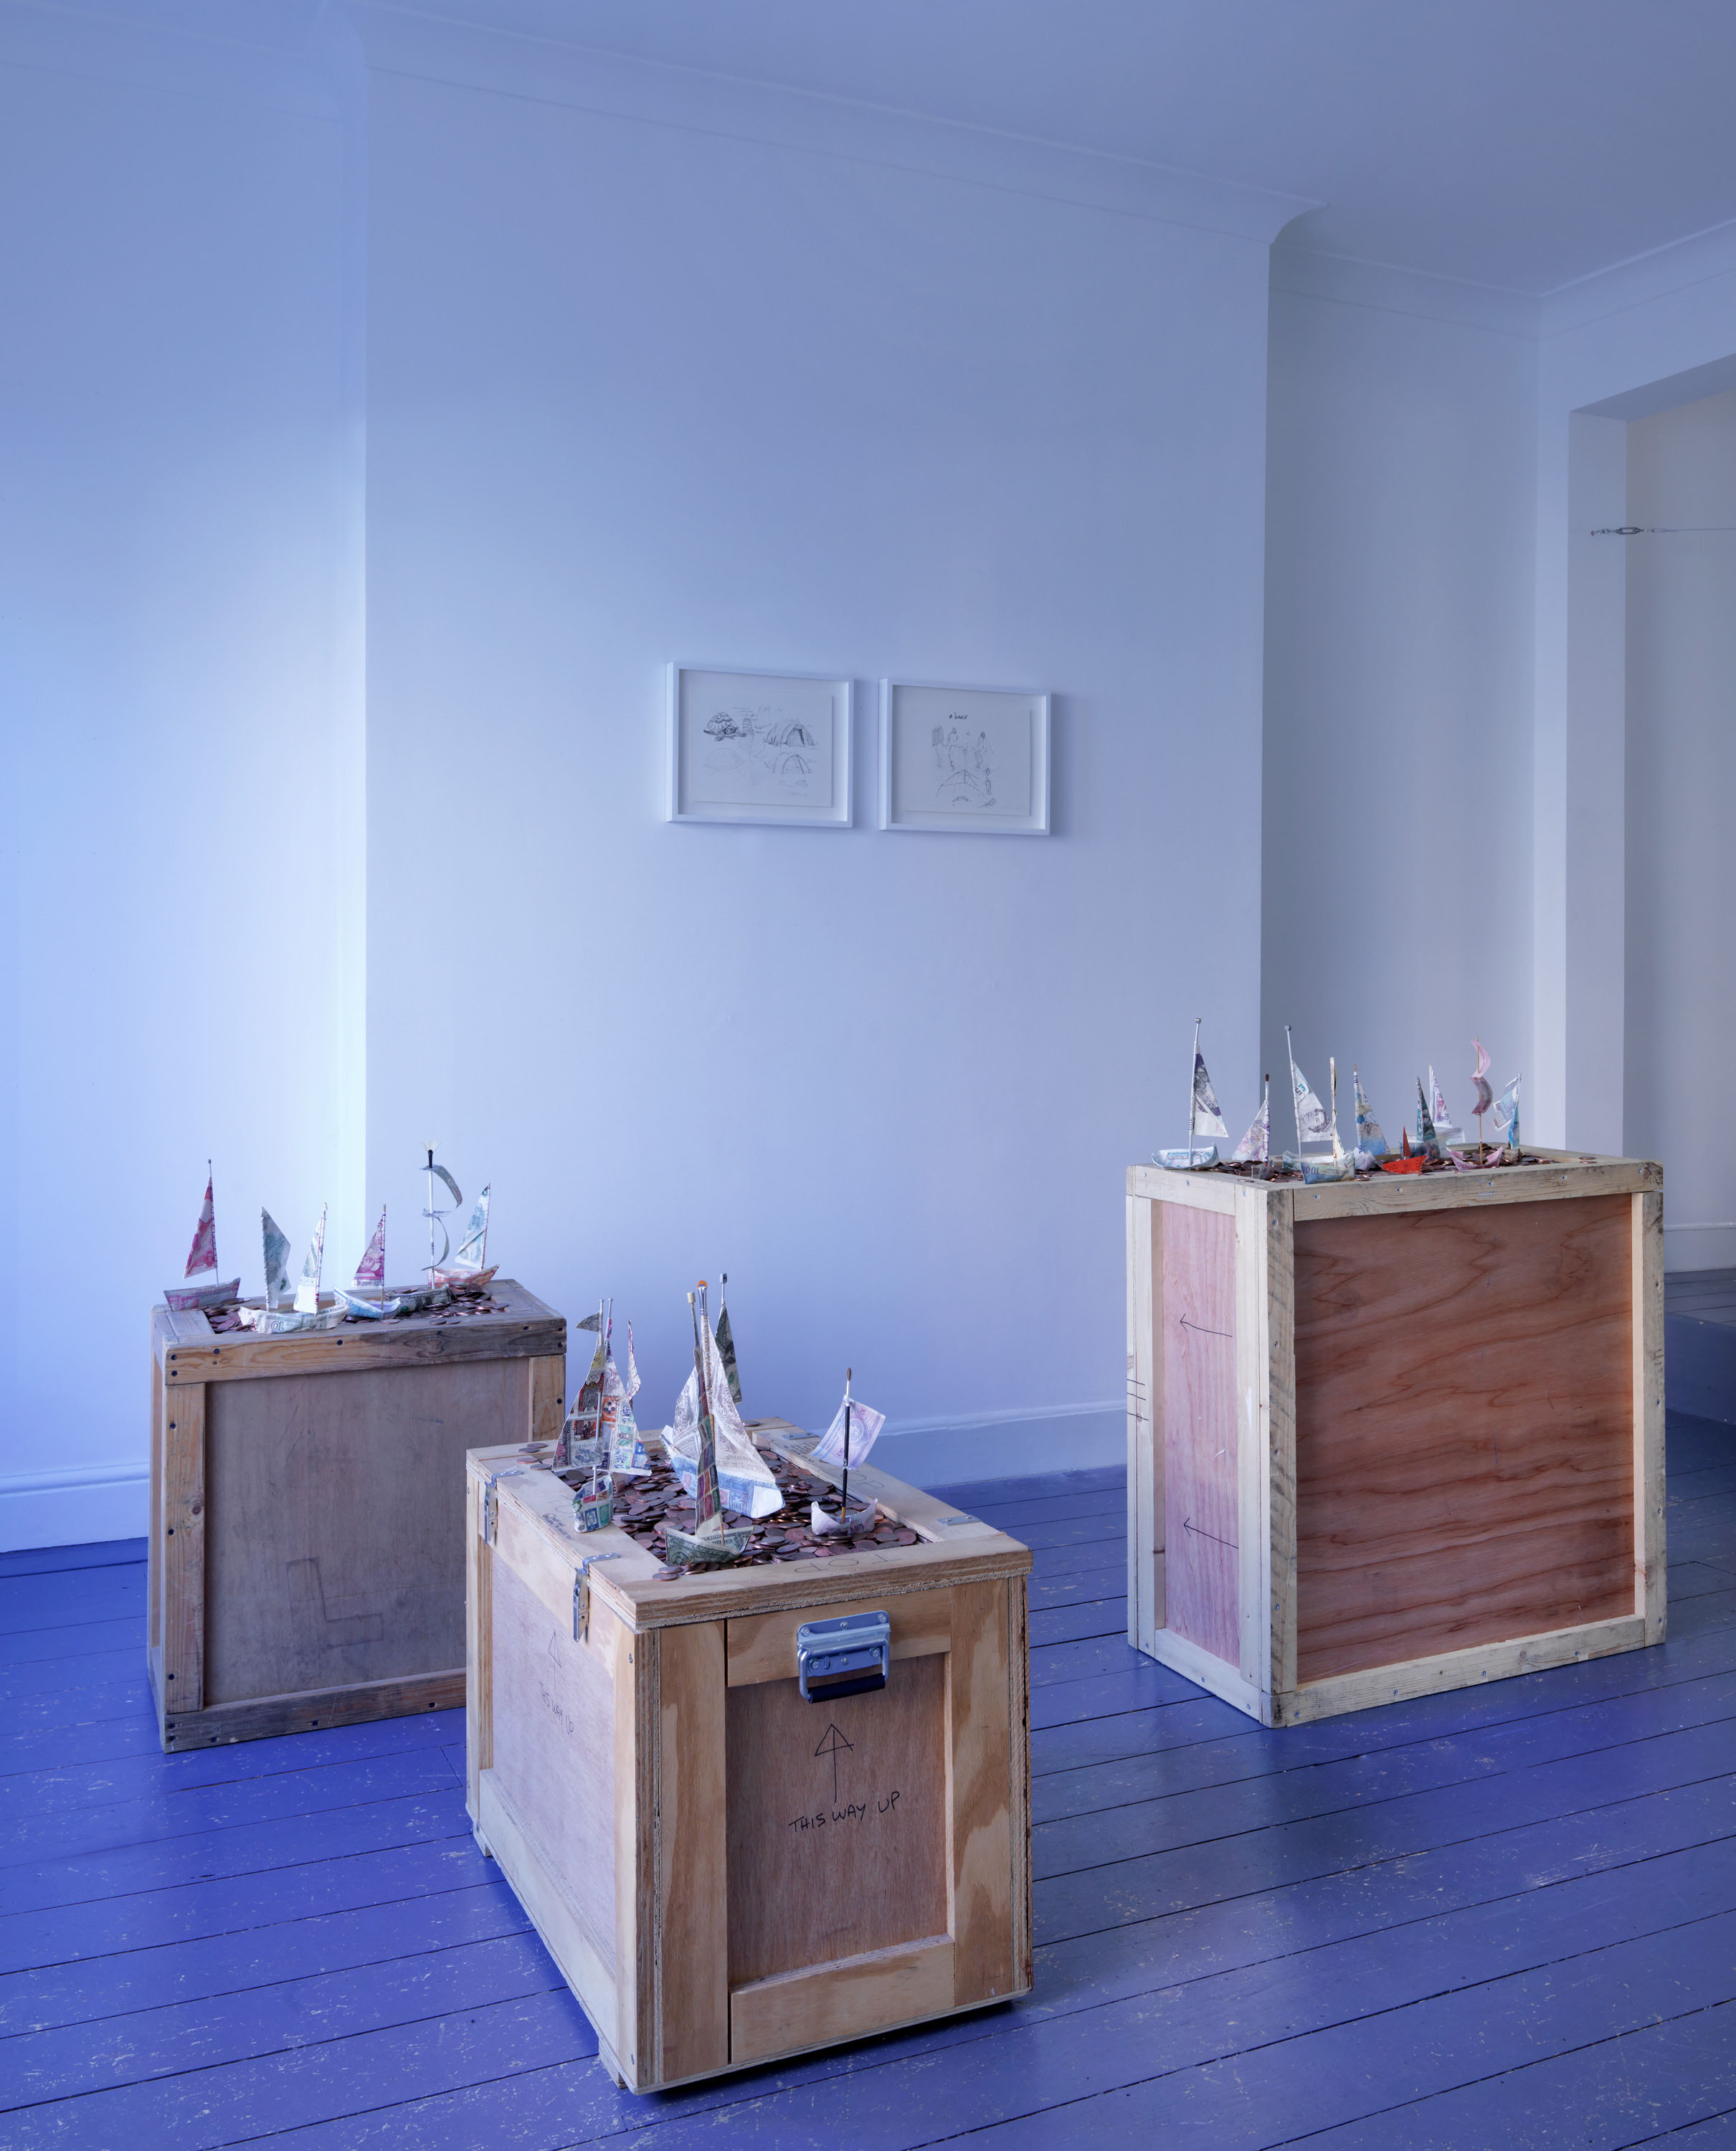 Patrick-heide-sea-limit-installation-shot-14